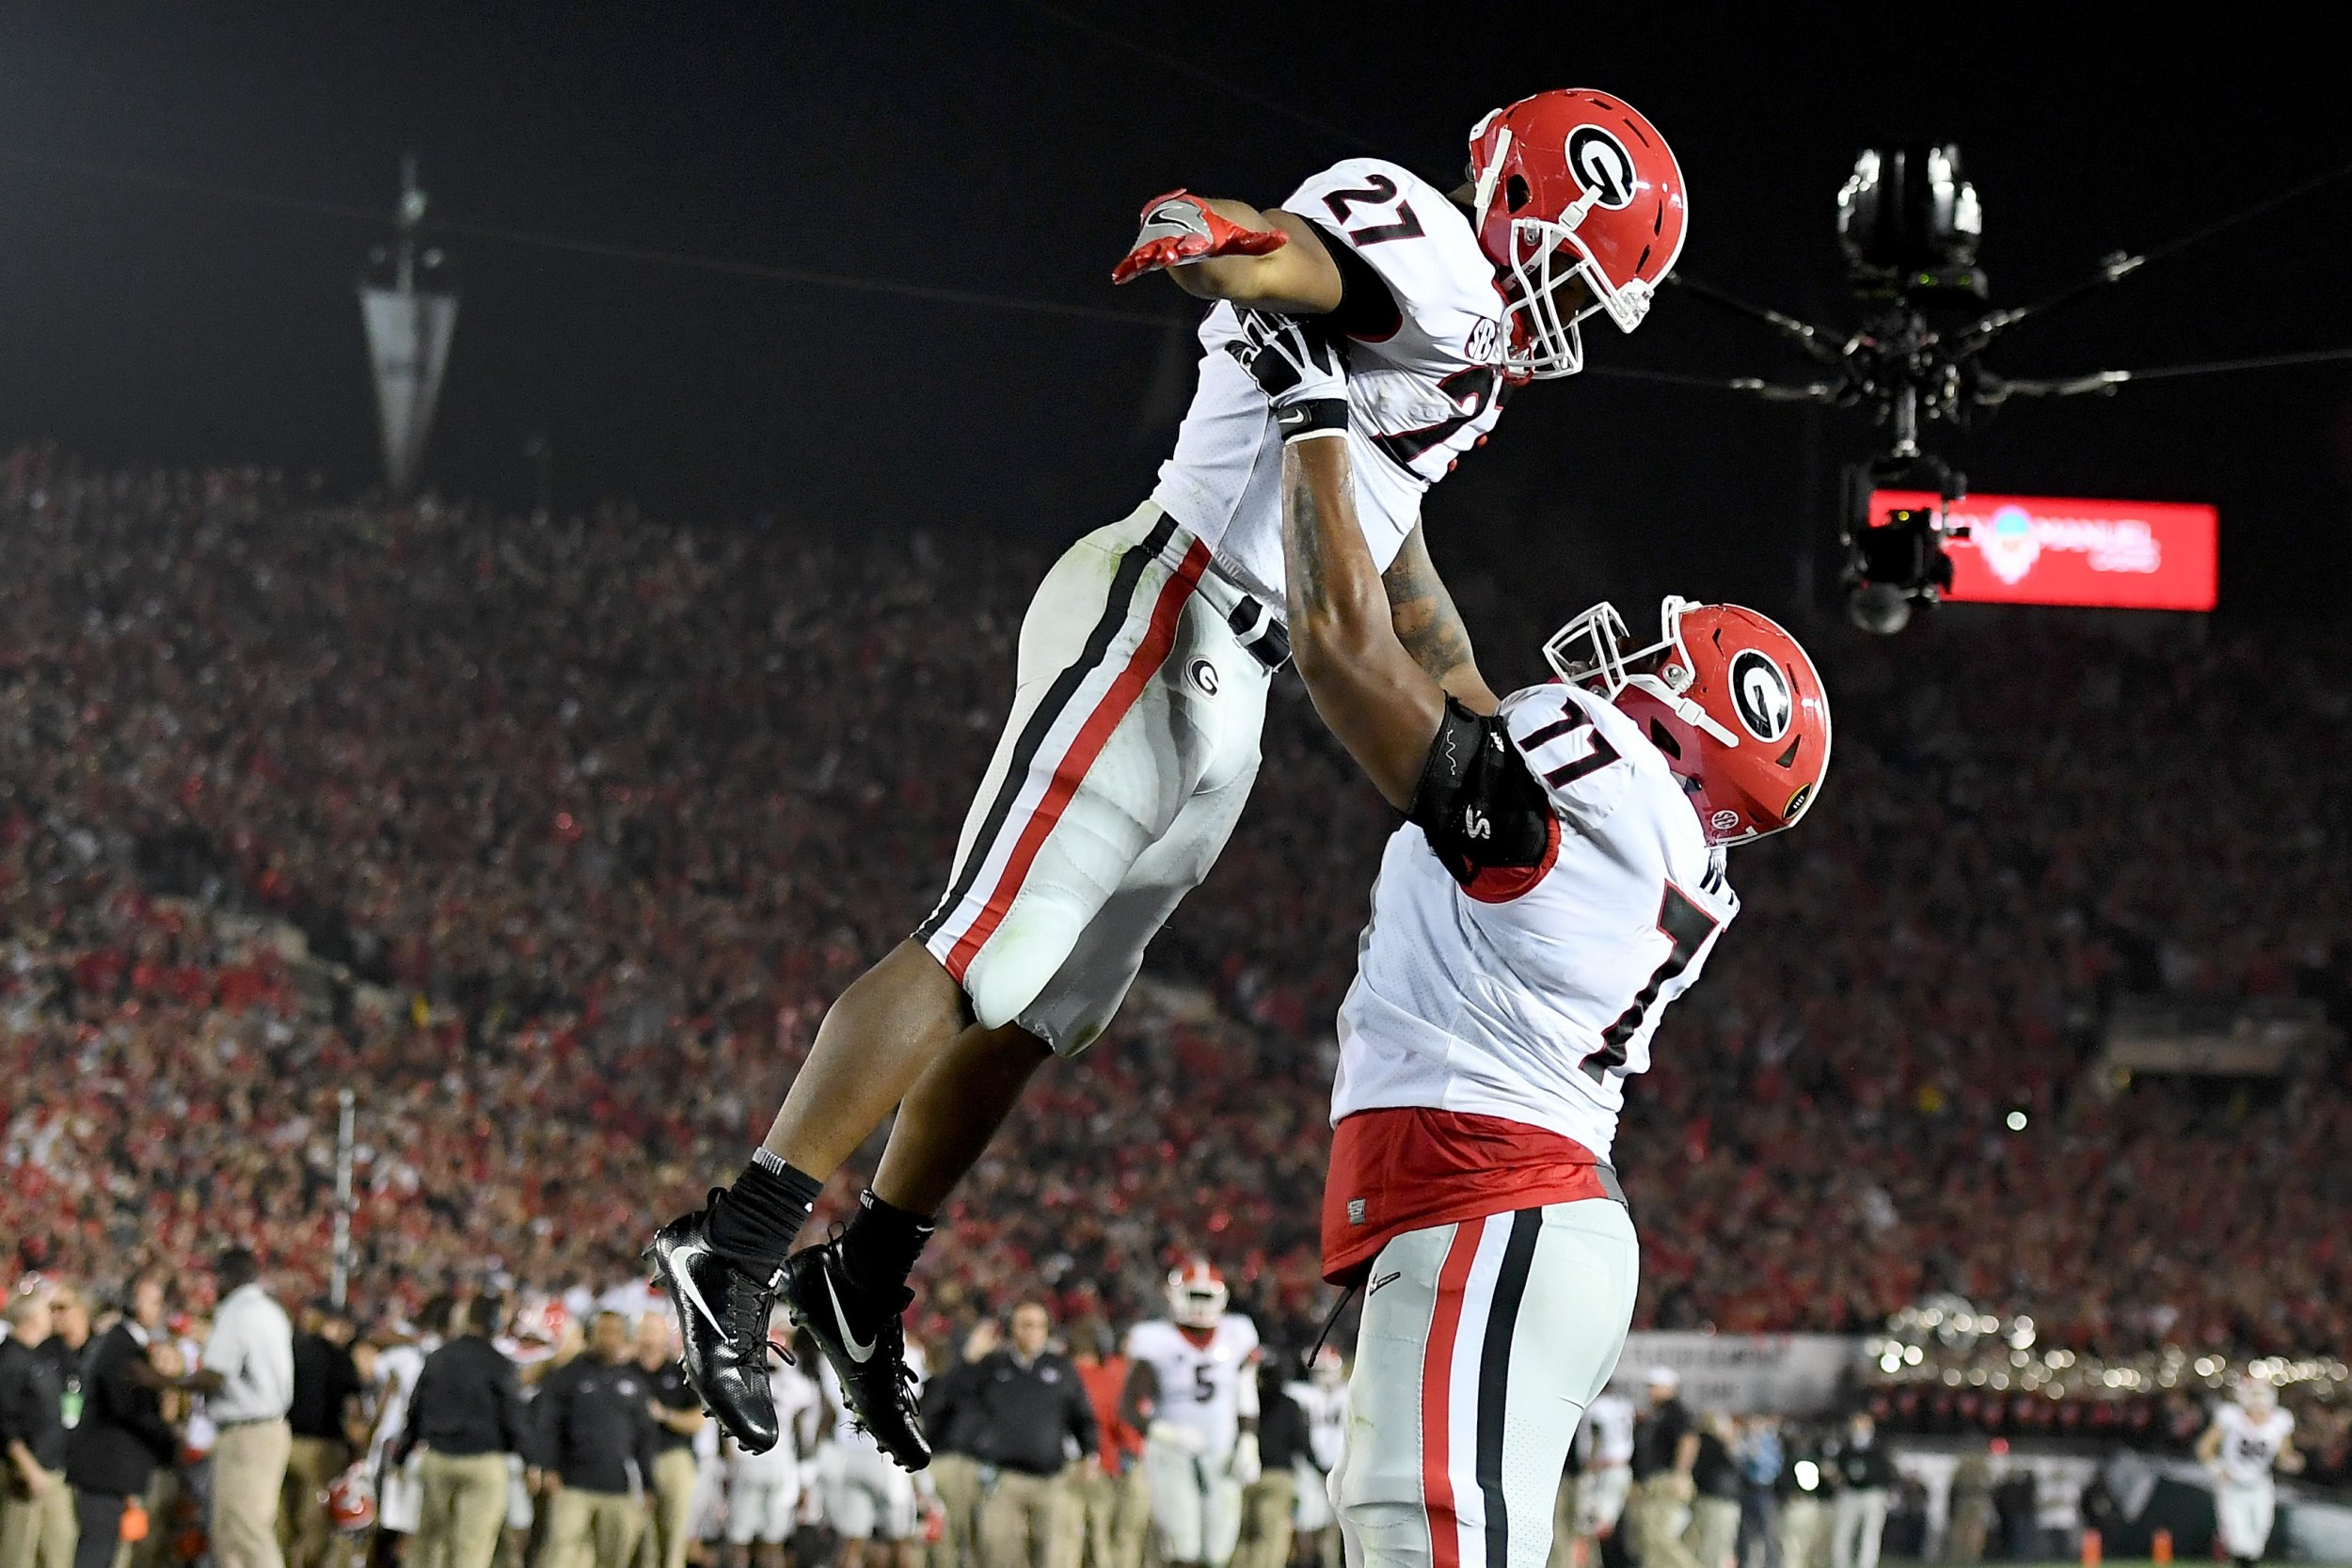 Nick Chubb, left, and Isaiah Wynn of the Georgia Bulldogs at the Rose Bowl in Pasadena, California, January 1.